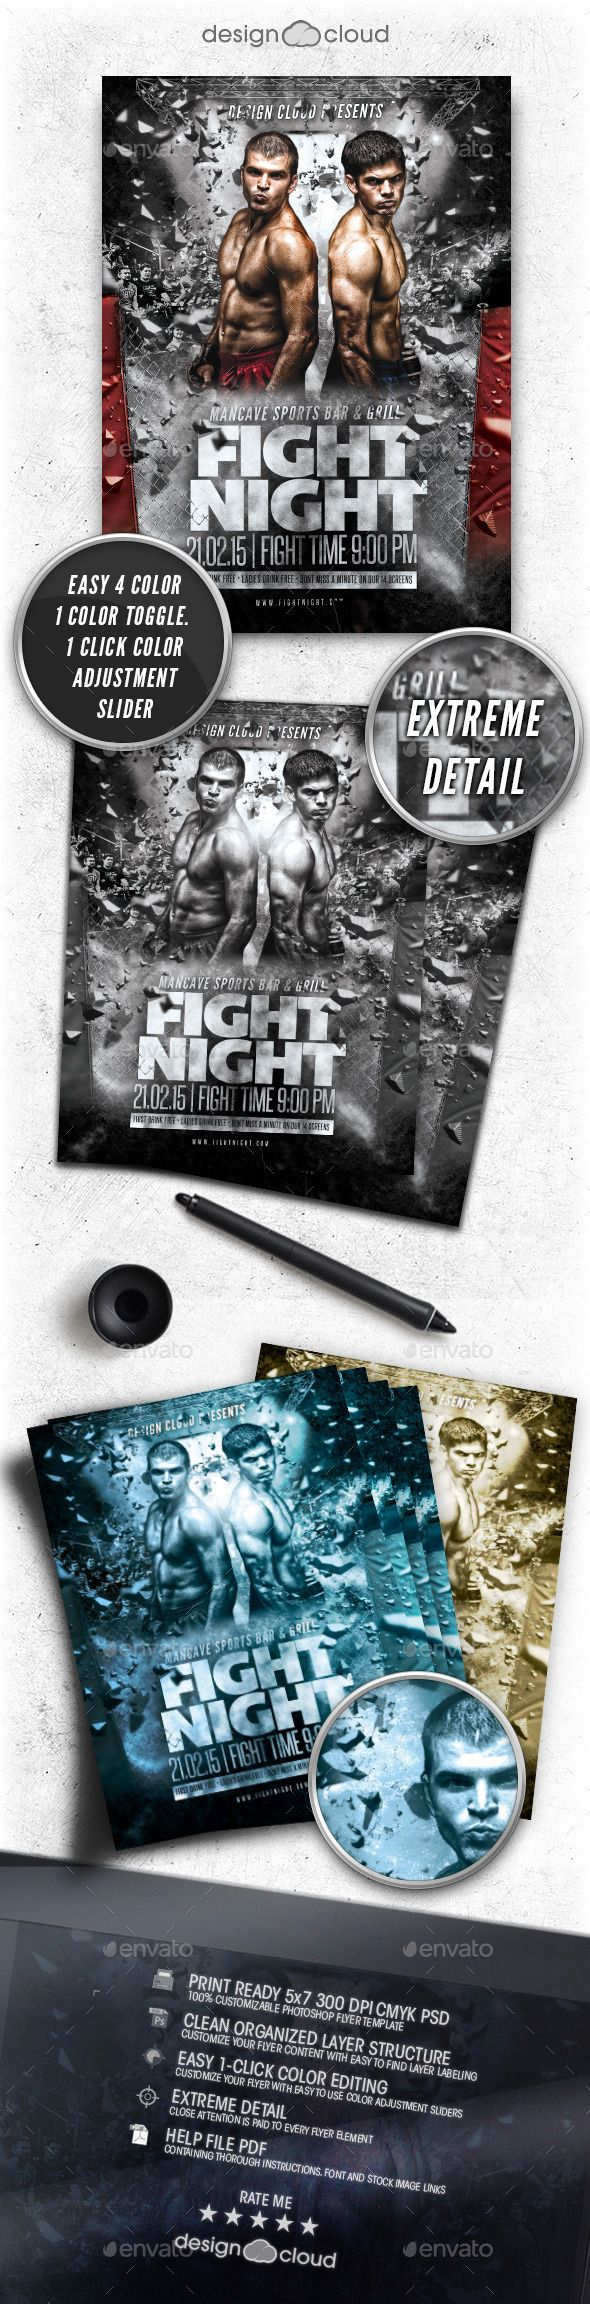 MMA Fight Flyer Template Vol. 1 — Photoshop PSD #throwdown #poster • Available here → https://graphicriver.net/item/-mma-fight-flyer-template-vol-1/10399337?ref=pxcr